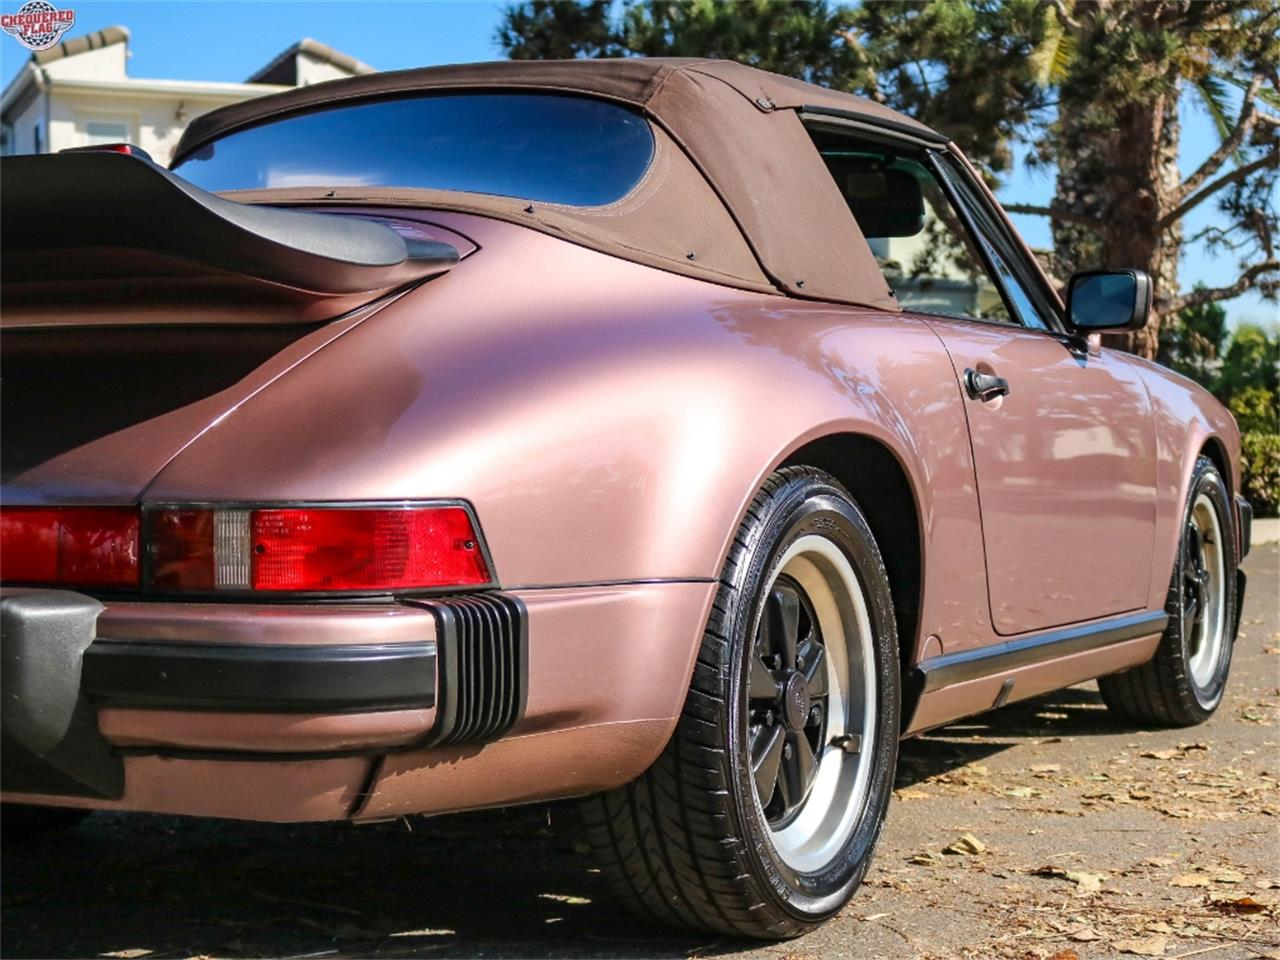 Large Picture of '87 Porsche 911 - $53,500.00 Offered by Chequered Flag International - M7SG